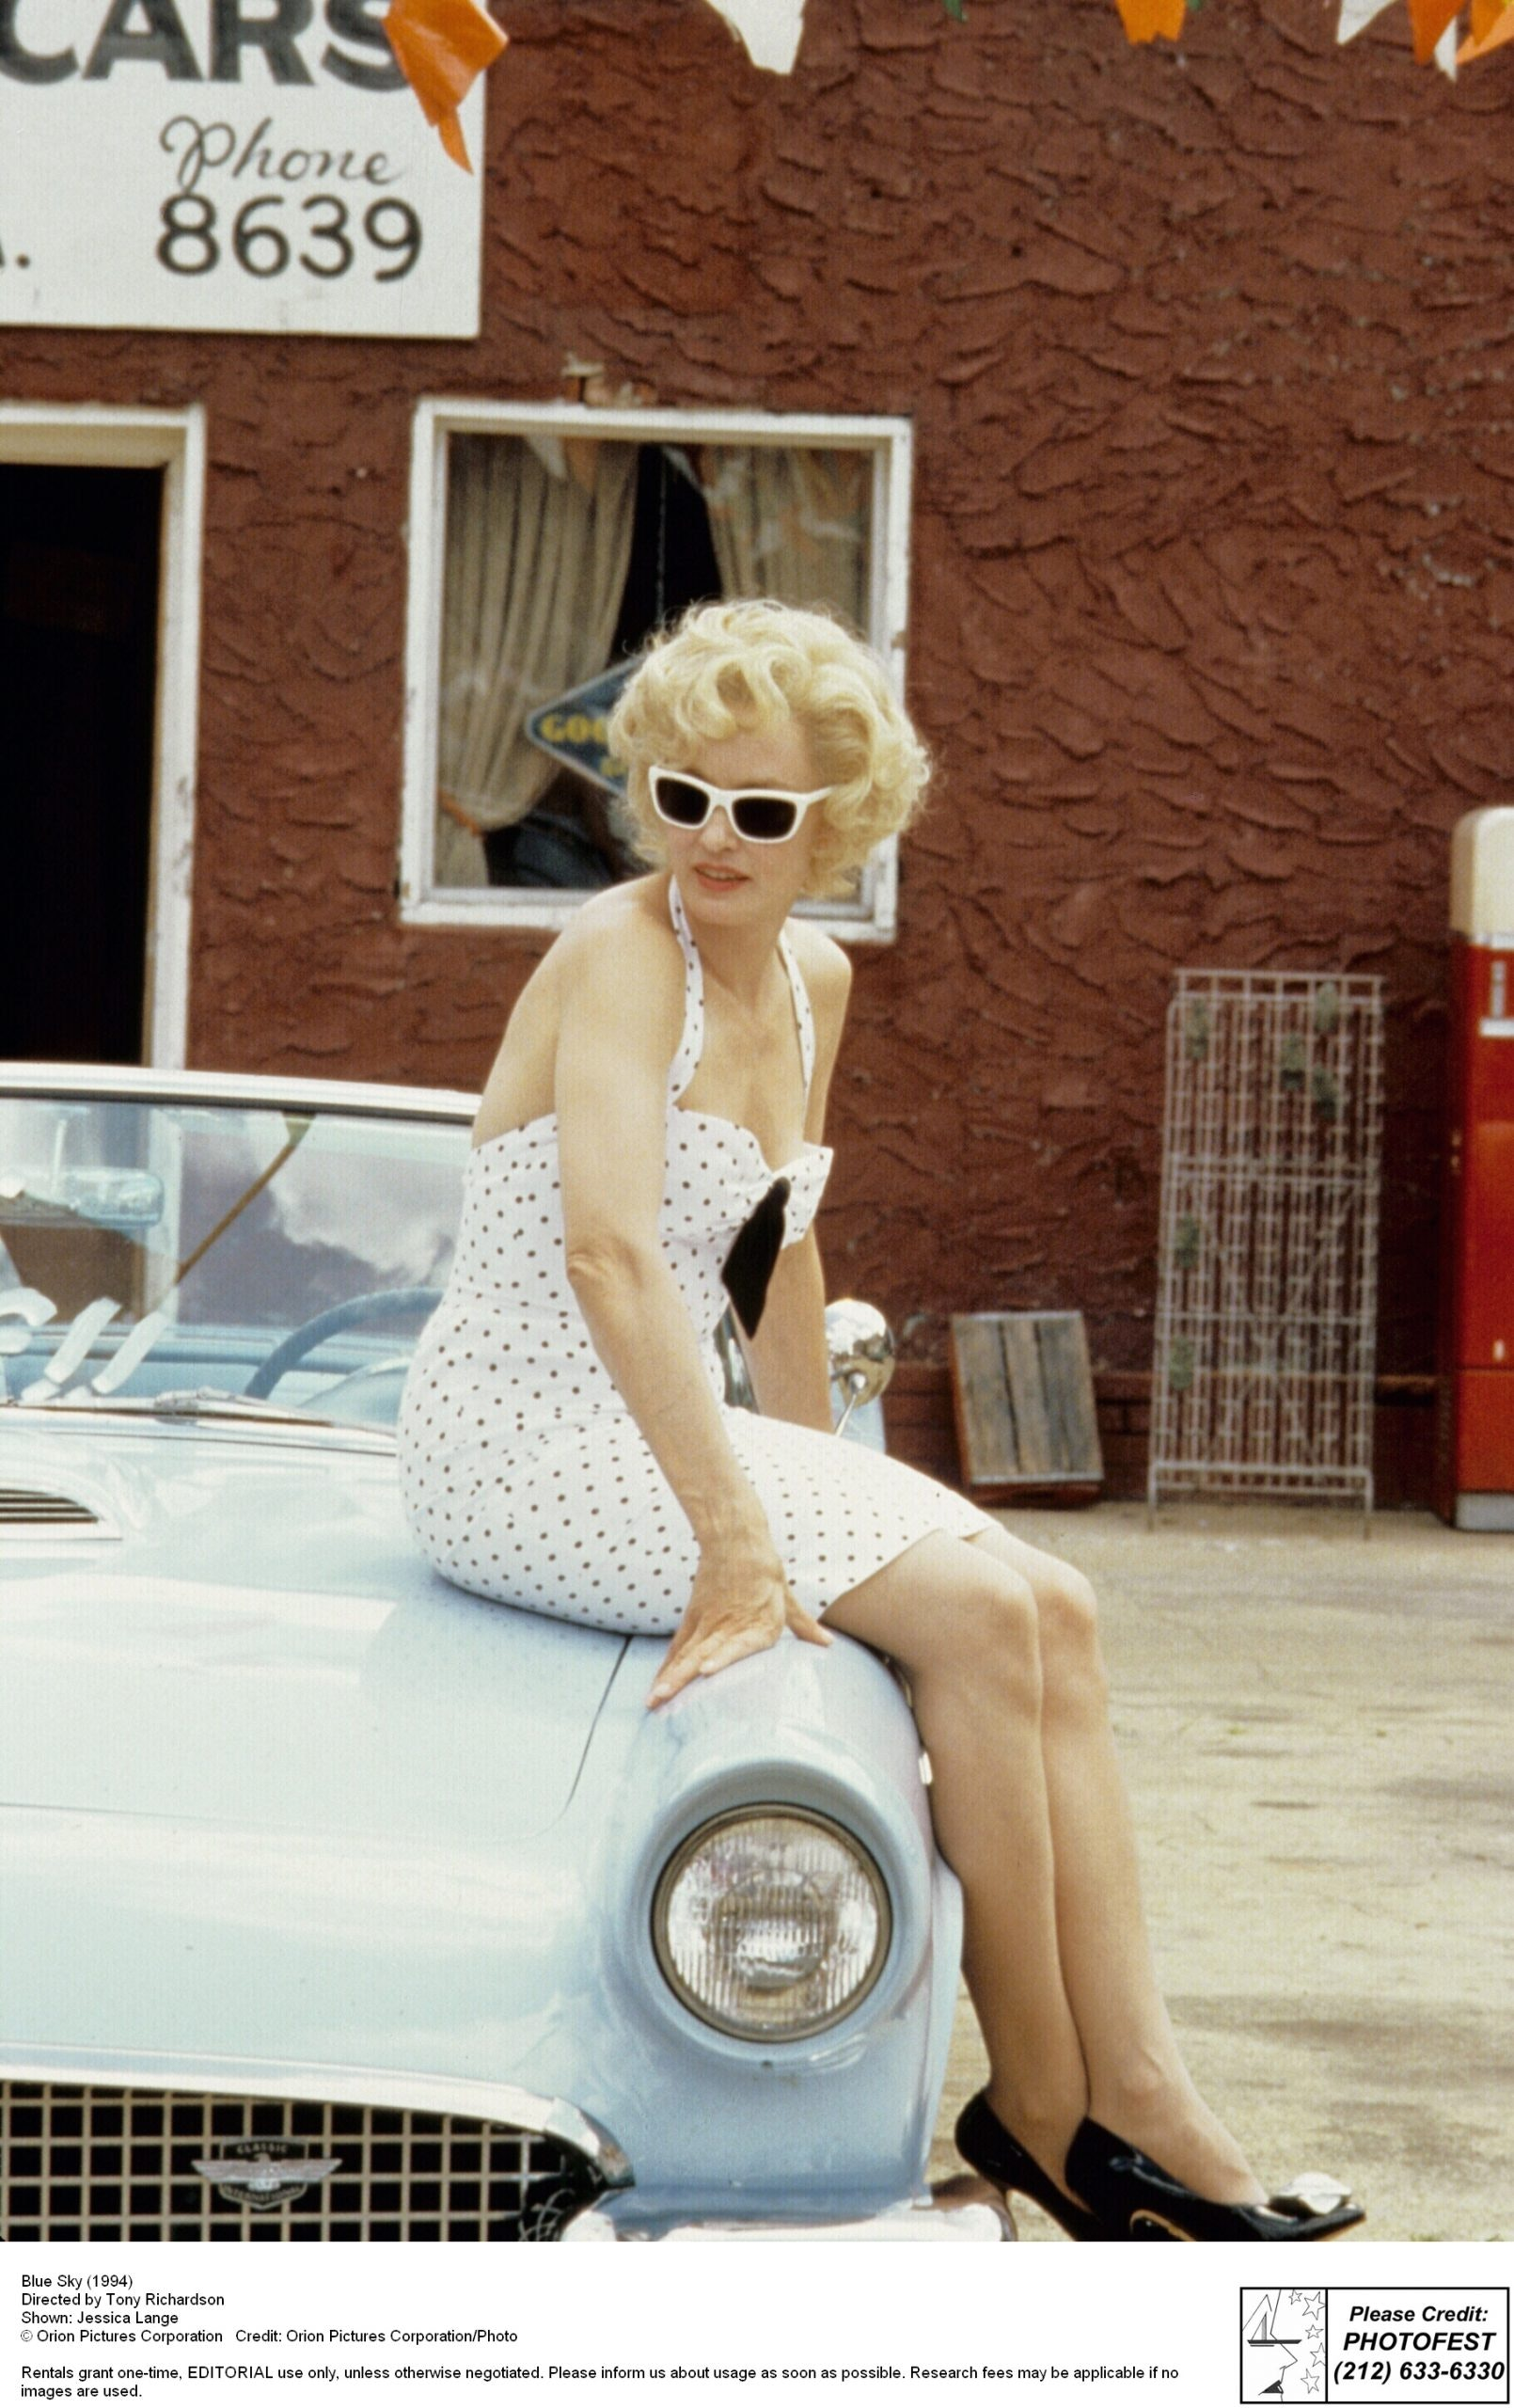 Woman in sunglasses and polka dot dress sitting on hood of a convertible.